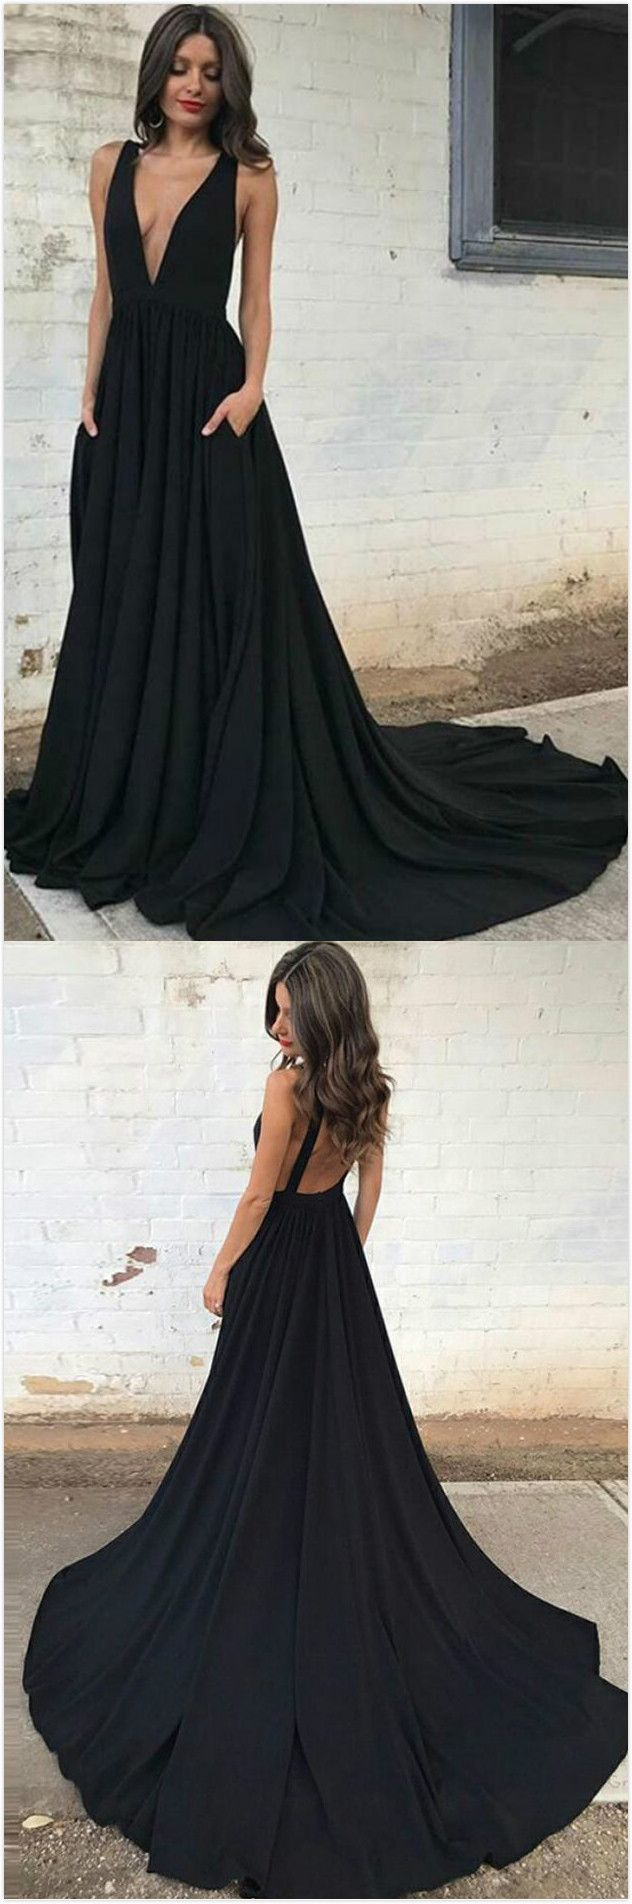 Aline deep vneck backless court train black prom dress with